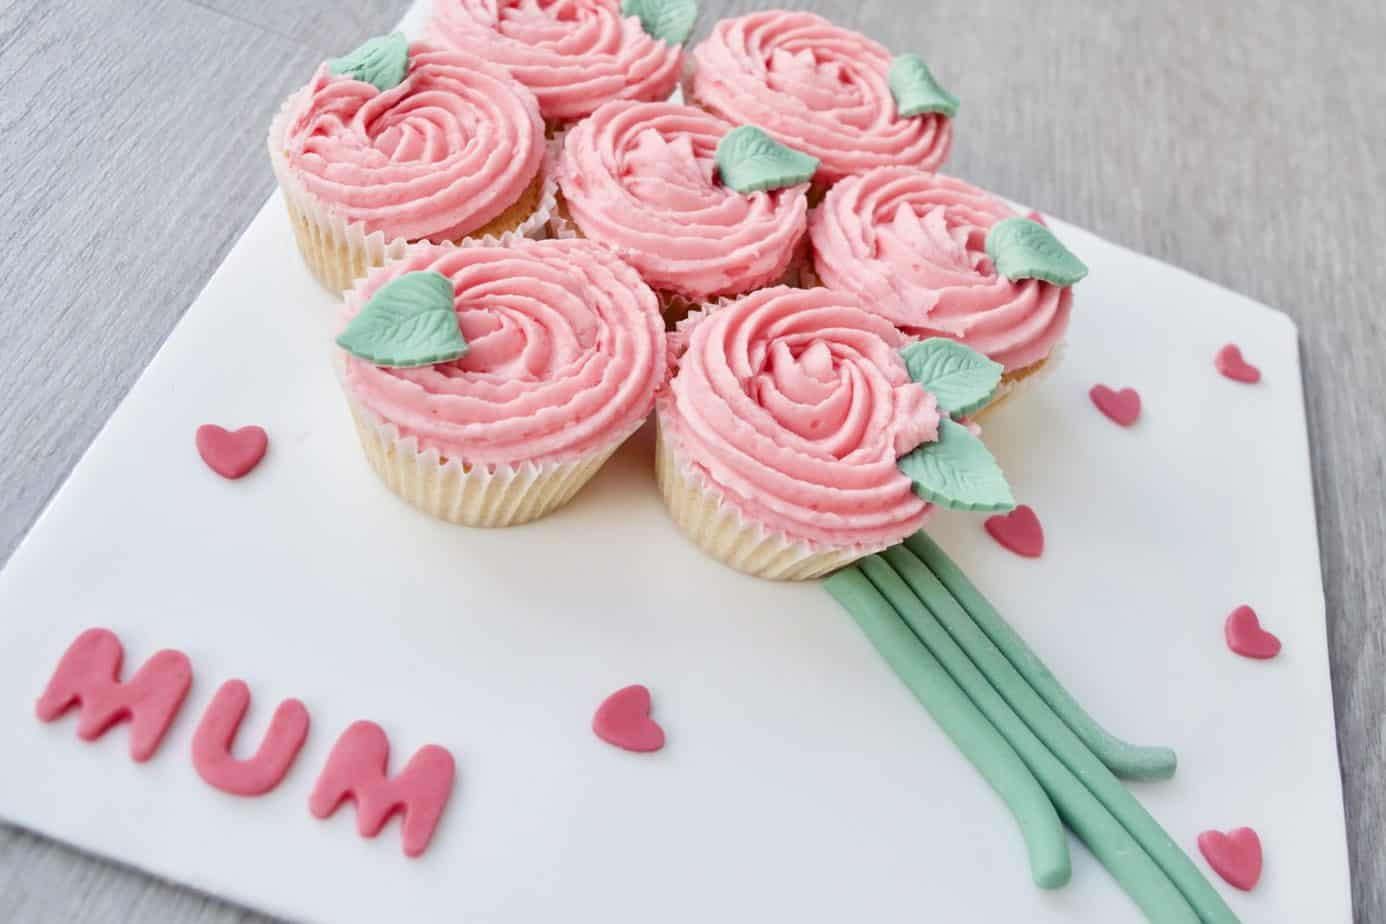 A flower bouquet made out of 7 small cupcakes in pink frosting